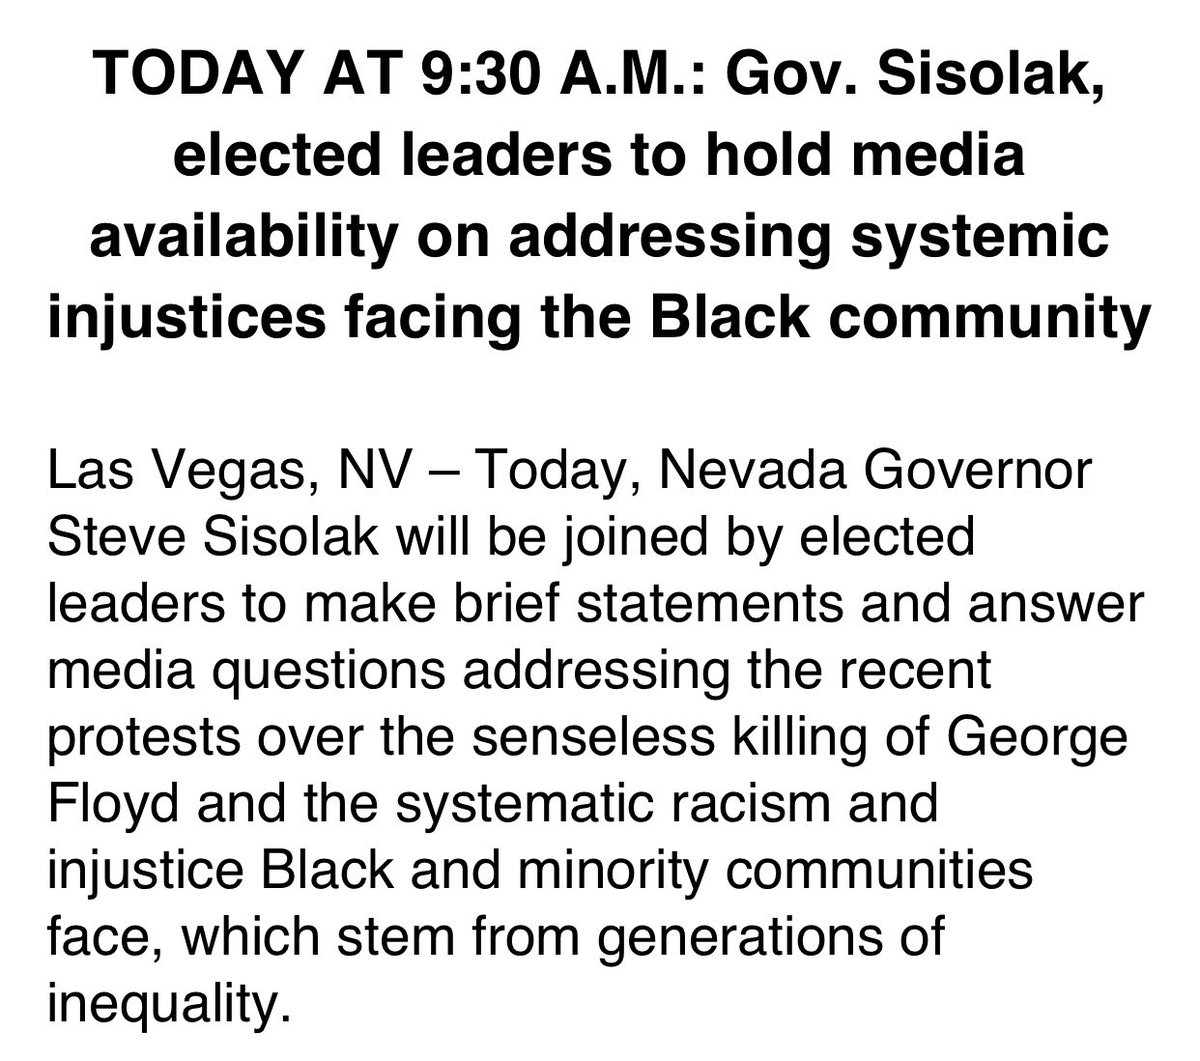 This morning, I will be joined by elected leaders to make brief statements & answer press questions addressing recent protests over the senseless killing of George Floyd & the systematic racism & injustice Black and minority communities face. Media must RVSP to press@gov.nv.gov https://t.co/Z5C3cBhFuC